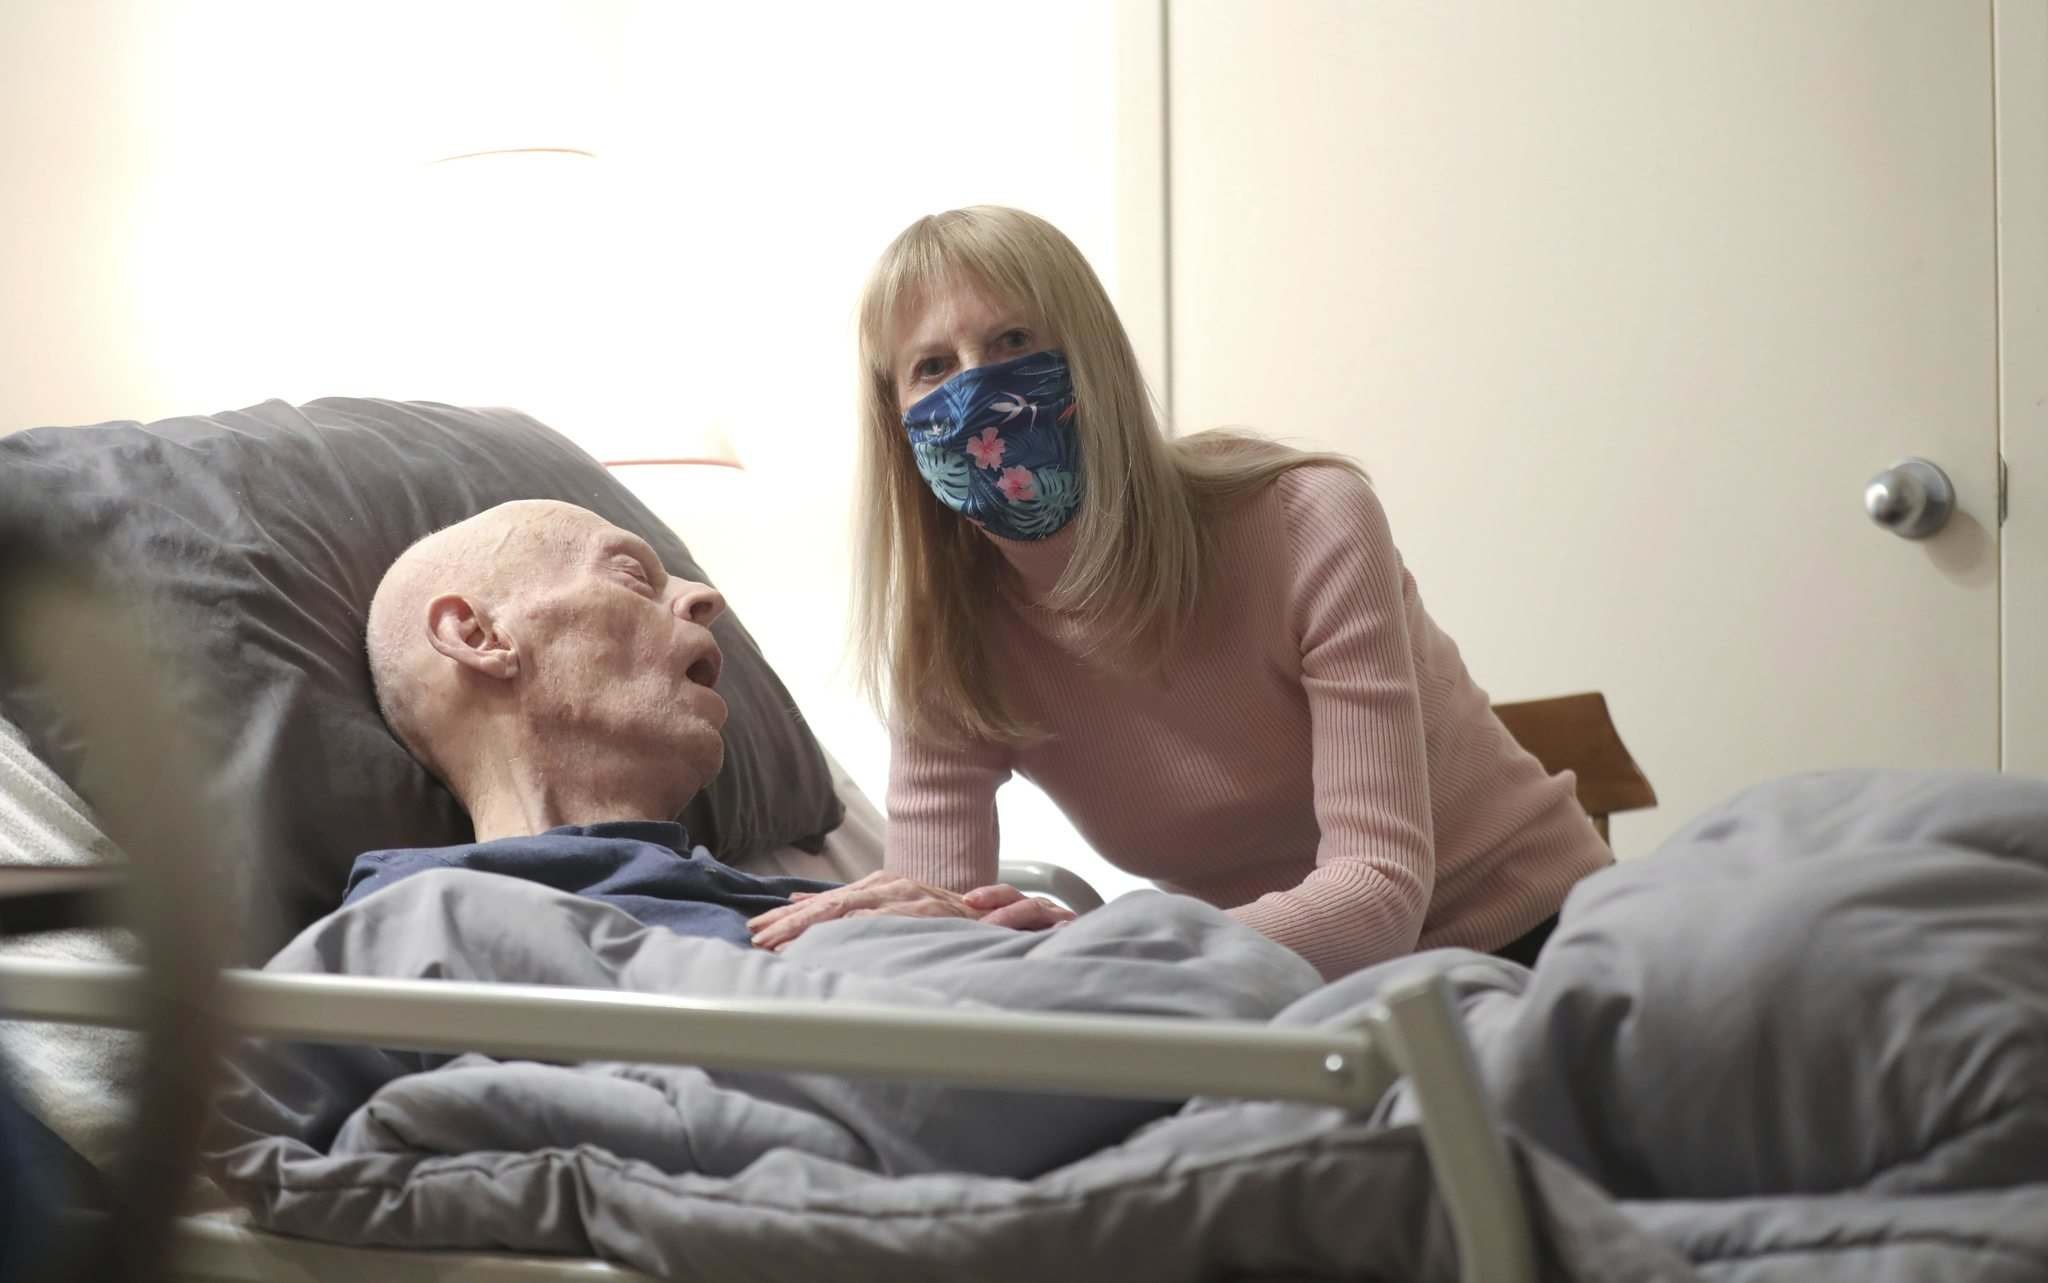 Linda-Beth Marr sits next to her dad, 95-year-old dad William Marr, as he sleeps in his bed which is part of a shared living space with Linda and her husband.